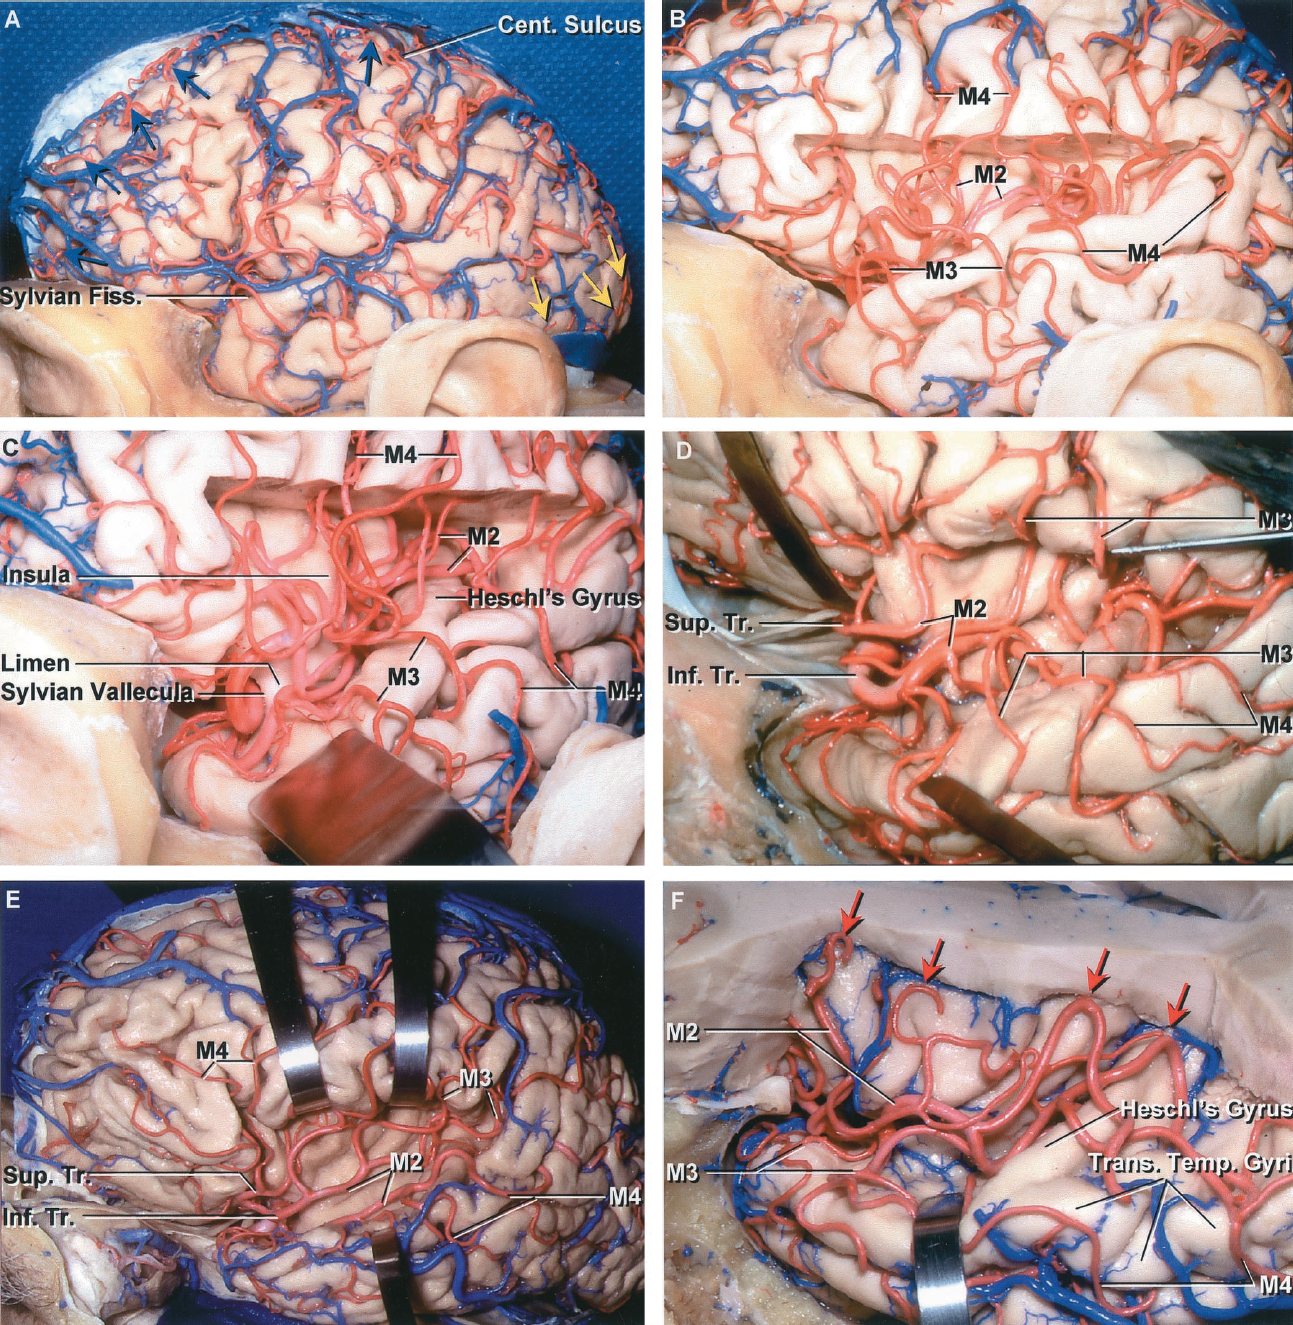 FIGURE 2.15. The insula and middle cerebral arteries. A, left side. The cortical branches of the MCA, which form the M4, spread out from the sylvian fissure to supply the majority of the lateral convexity. Branches of the ACA (yellow arrows) spread over the superior hemispheric border to reach the lateral hemispheric surface, and branches of the PCA pass around the occipital pole and adjacent art of the temporal lobe to supply the adjacent part of the convexity (red arrows). B, the frontoparietal operculum that covers the upper part of the insula has been removed to show the M2 crossing the insula, the M3 curving around the opercular lips, and the M4 on the lateral cortical surface. C, enlarged view. The sylvian vallecula is the opening between the lips of the sylvian at the limen insula where the MCA turns posteriorly to form the M2 segment. D, another specimen with the lips of the sylvian fissure retracted. This shows a large dominant inferior trunk that gives rise to multiple branches that supply the majority of the lateral convexity. E, another hemisphere with the lips of the sylvian fissure retracted to expose the branches forming the M2, M3, and M4 crossing the insula and passing around the opercular lips to reach the cortical surface. F, the upper part of the hemisphere and the frontal and parietal operculum have been removed to expose the M2 branches crossing the insula. The posterior M3 branches cross the transverse temporal gyri, the most anterior of which forms Heschl's gyrus, to reach the cortical surface. Cent., central; Fiss., fissure; Inf., inferior; Sup., superior; Temp., temporal; Tr., trunk; Trans., transverse.